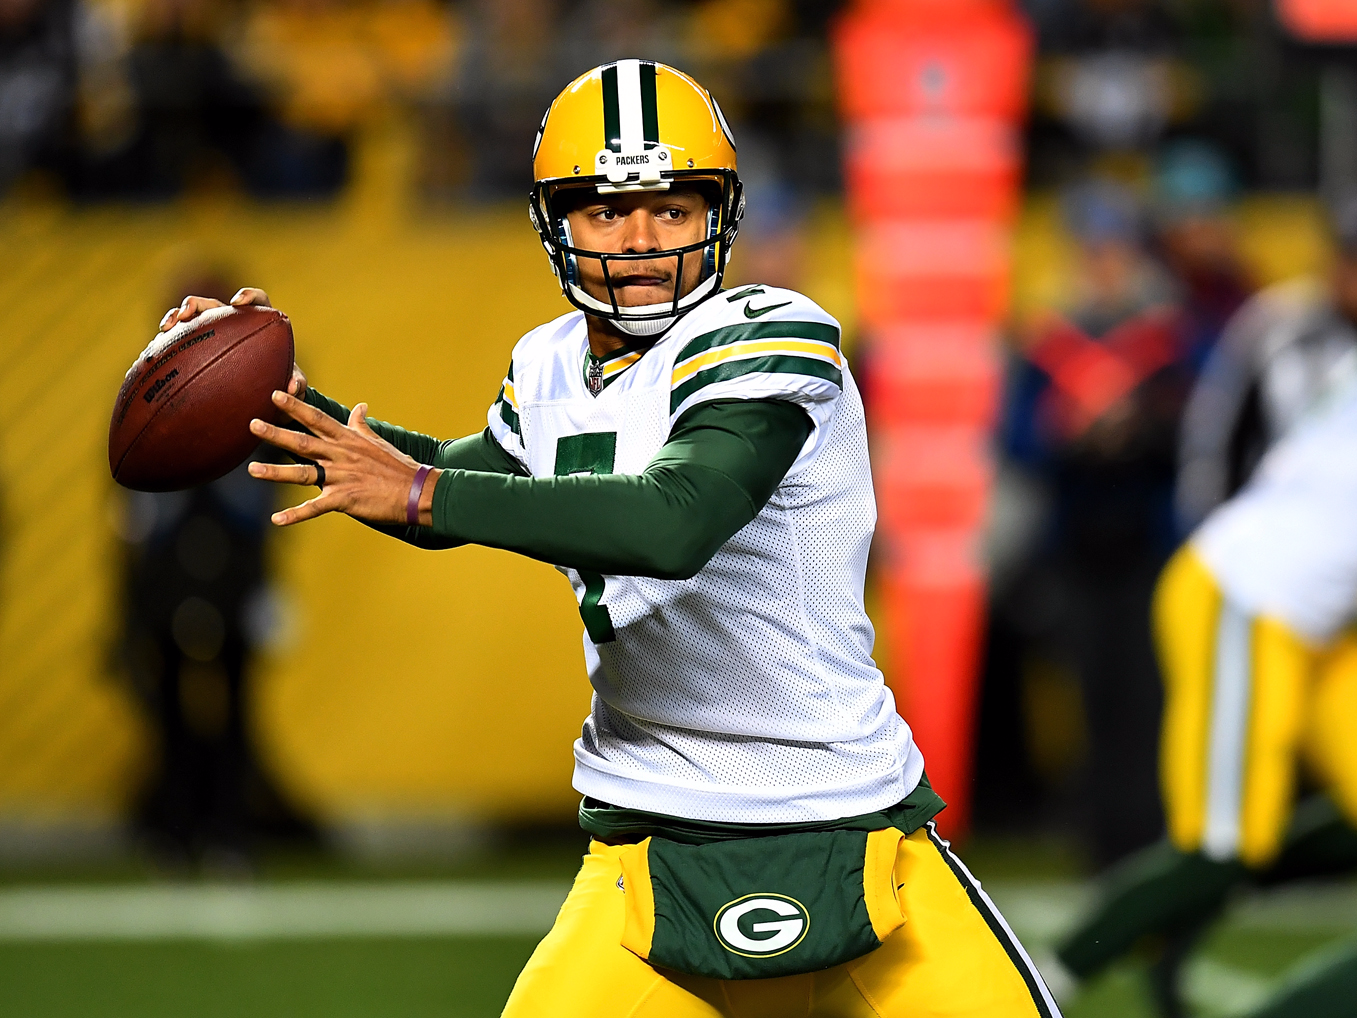 22. Green Bay Packers